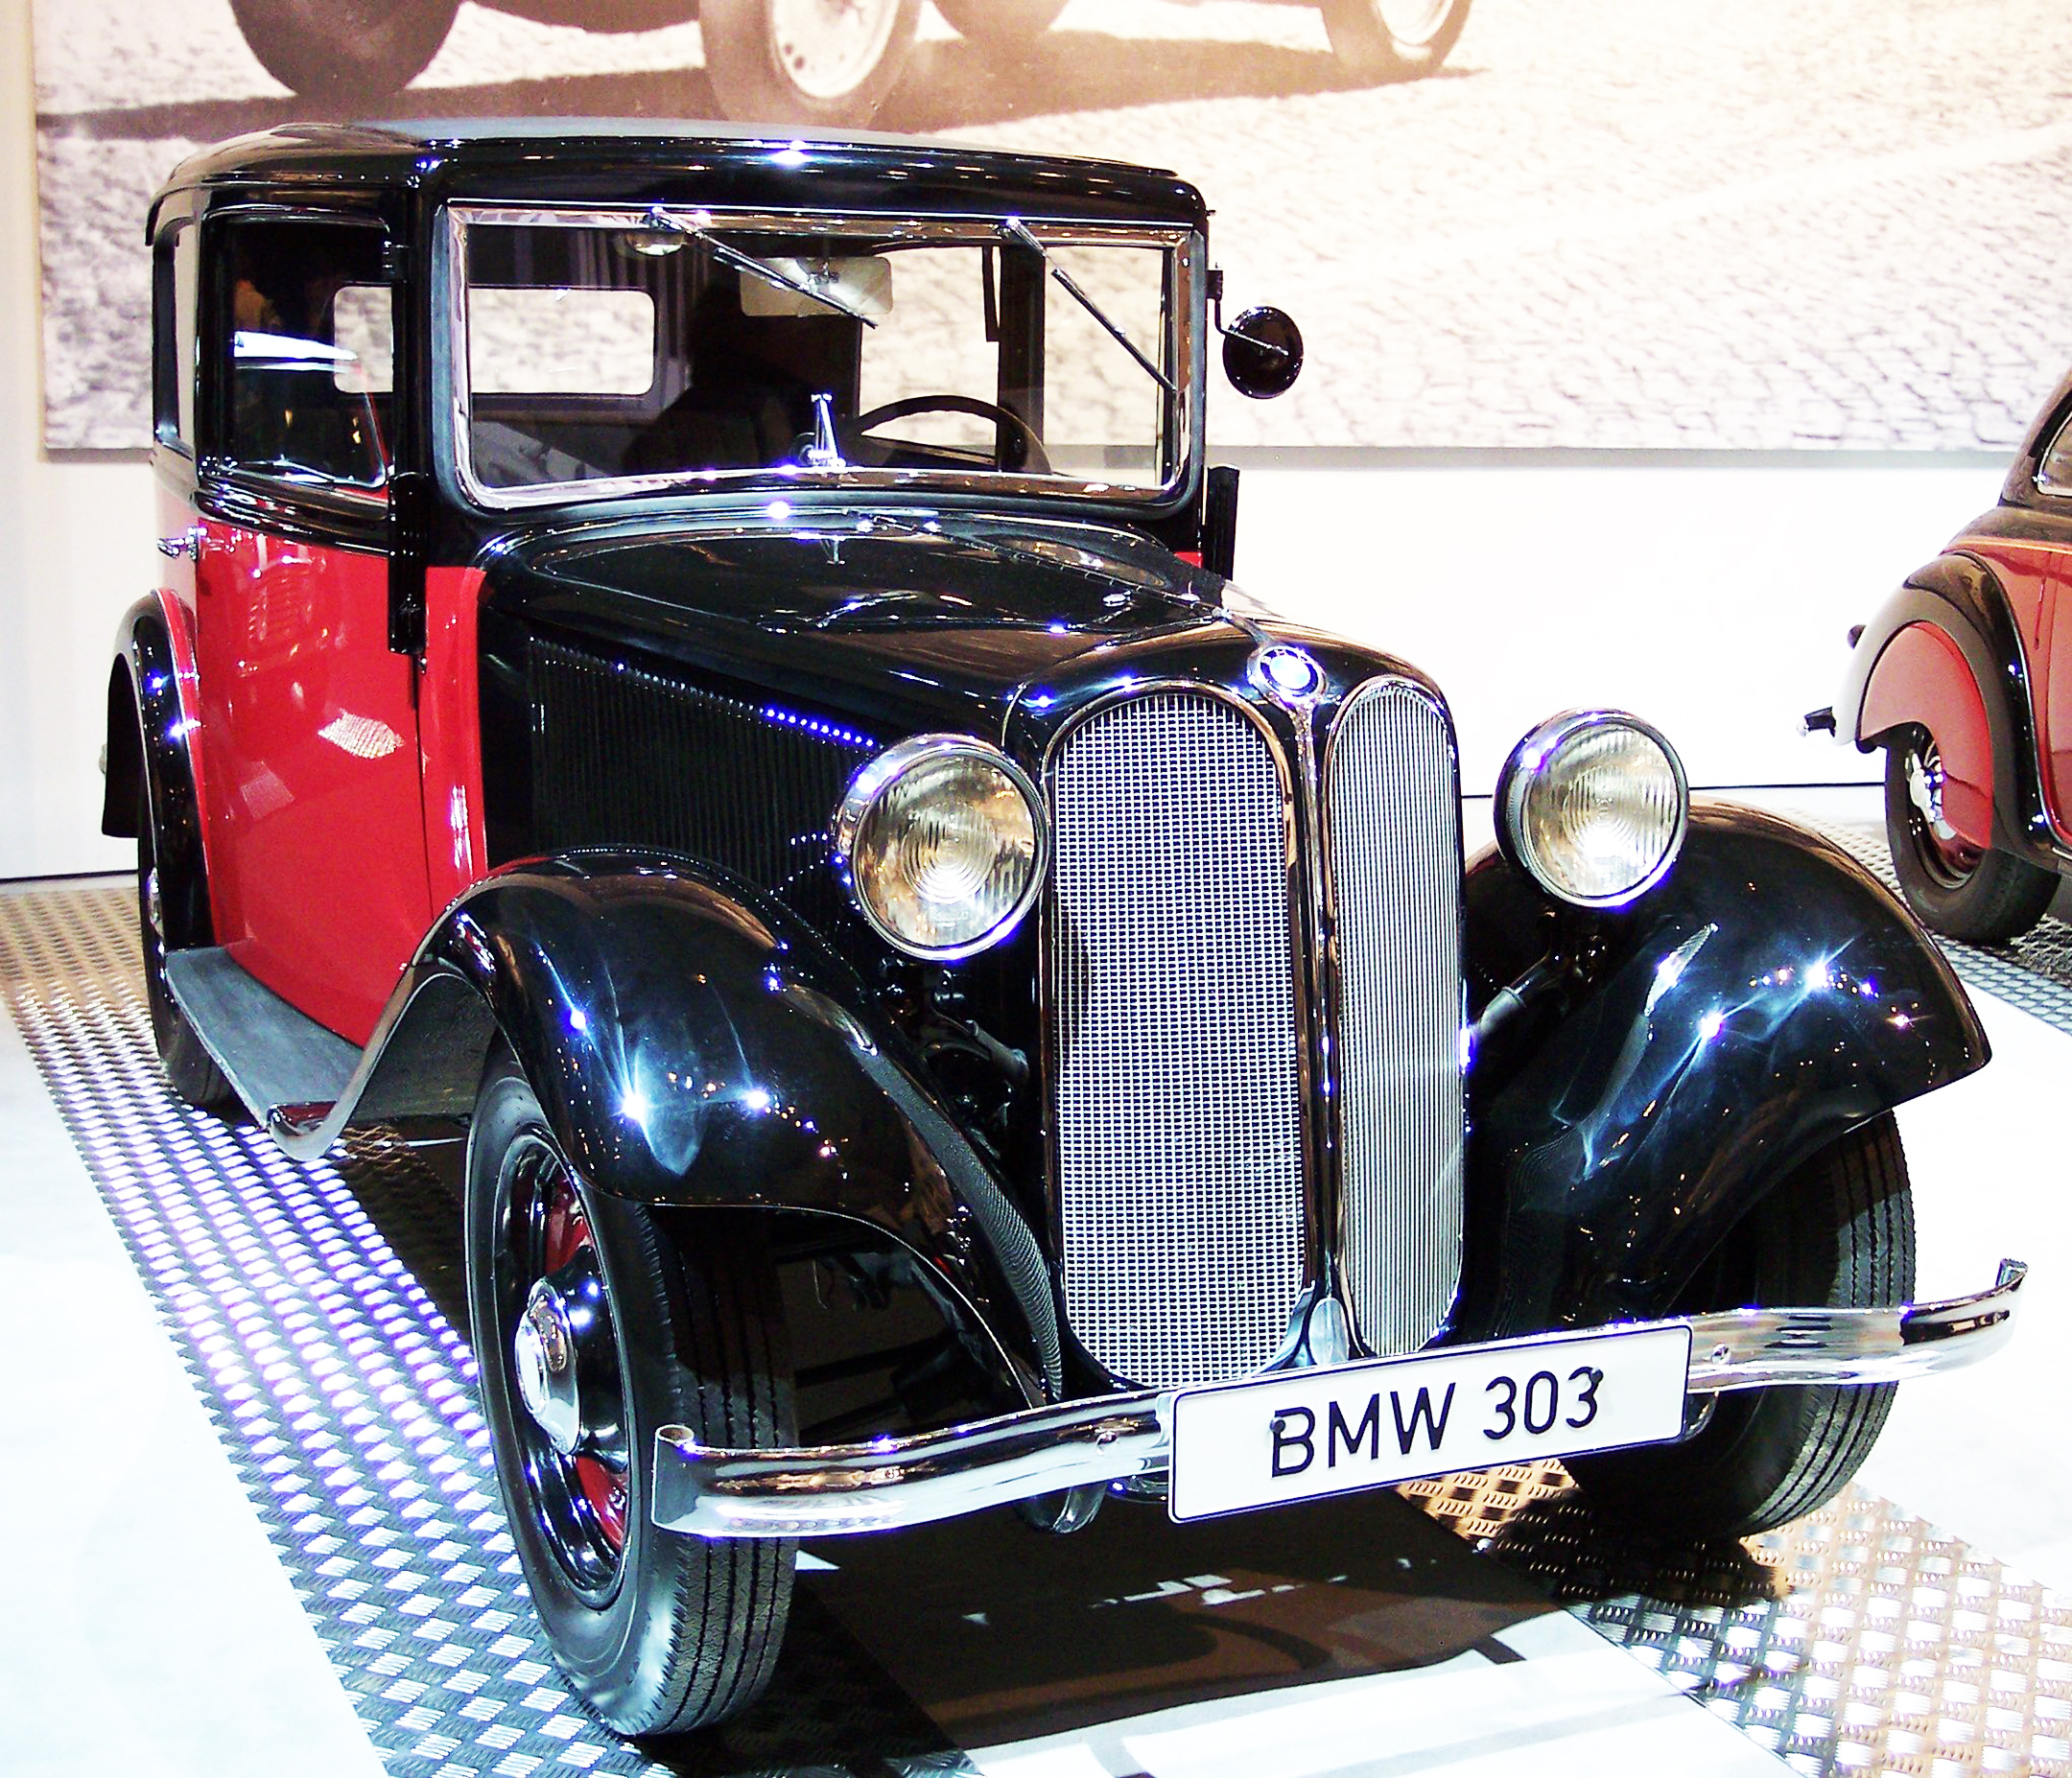 BMW 303 - 1933 - 2000s -photo by Stahlkocher -via Free-Documentation-License